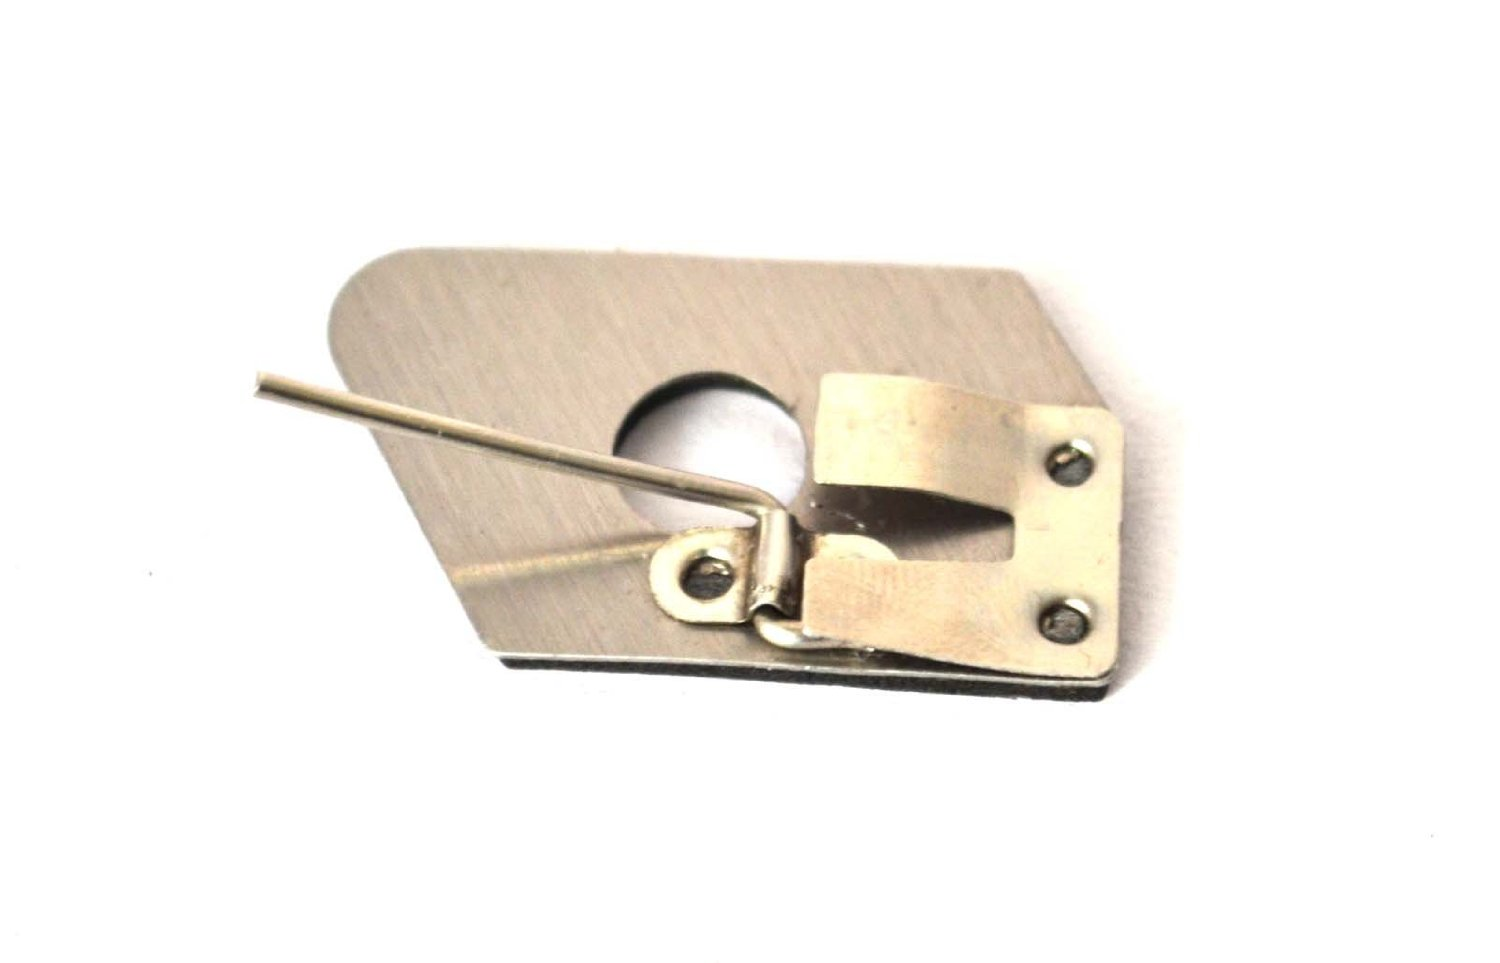 Albertu Arrow Rest Steel Adhesive Archery Rest for Recurve Bow Right Hand